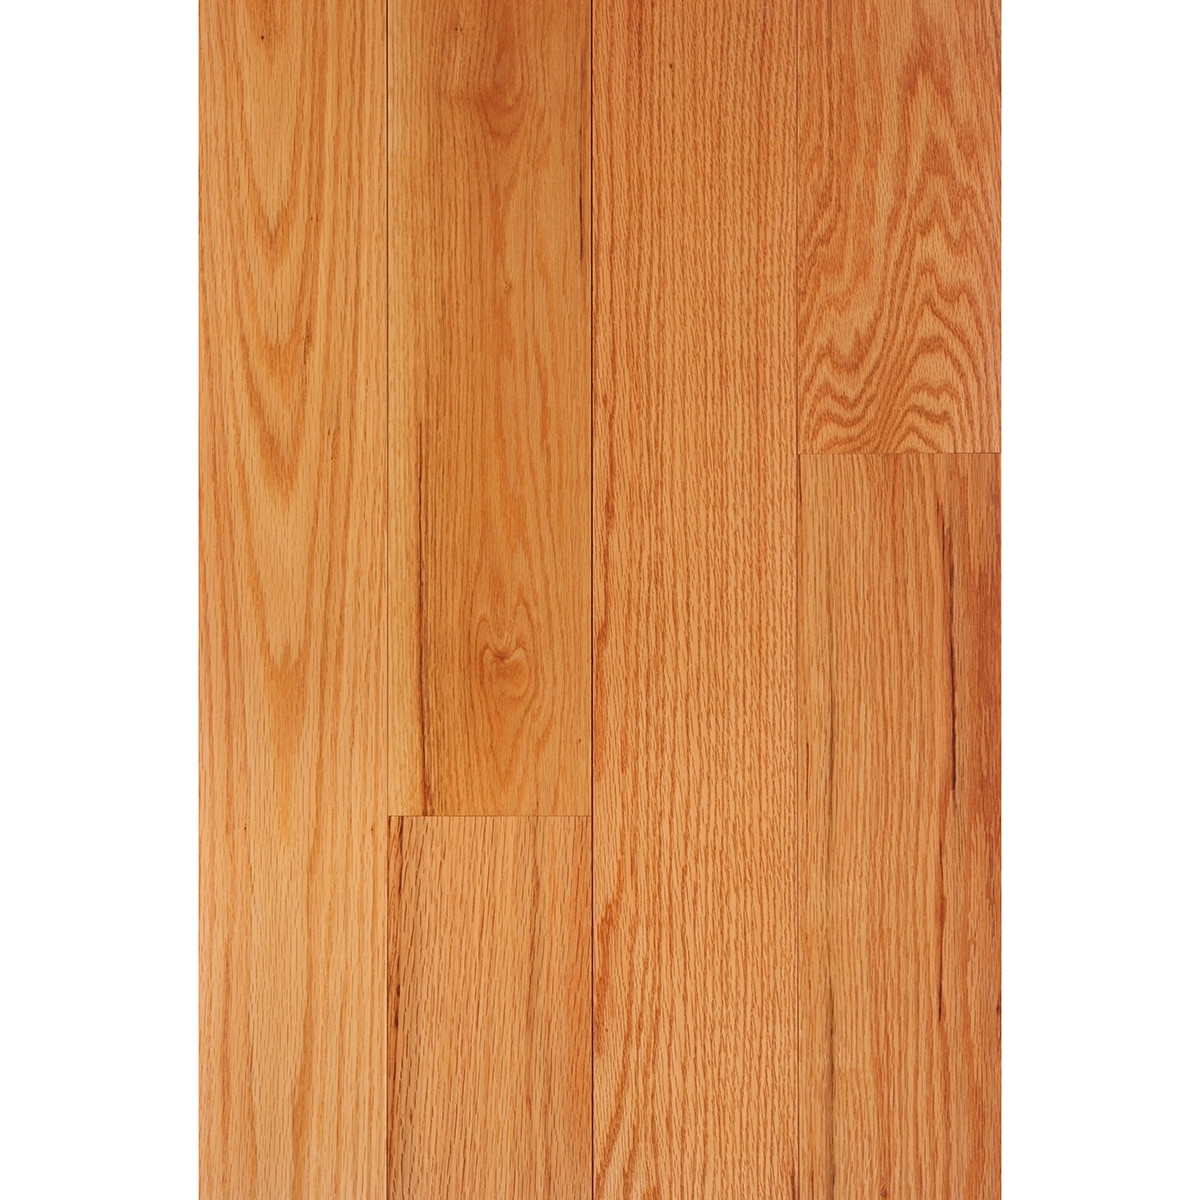 5 inch solid hardwood flooring of red oak 3 4 x 5 select grade flooring for other items in this category